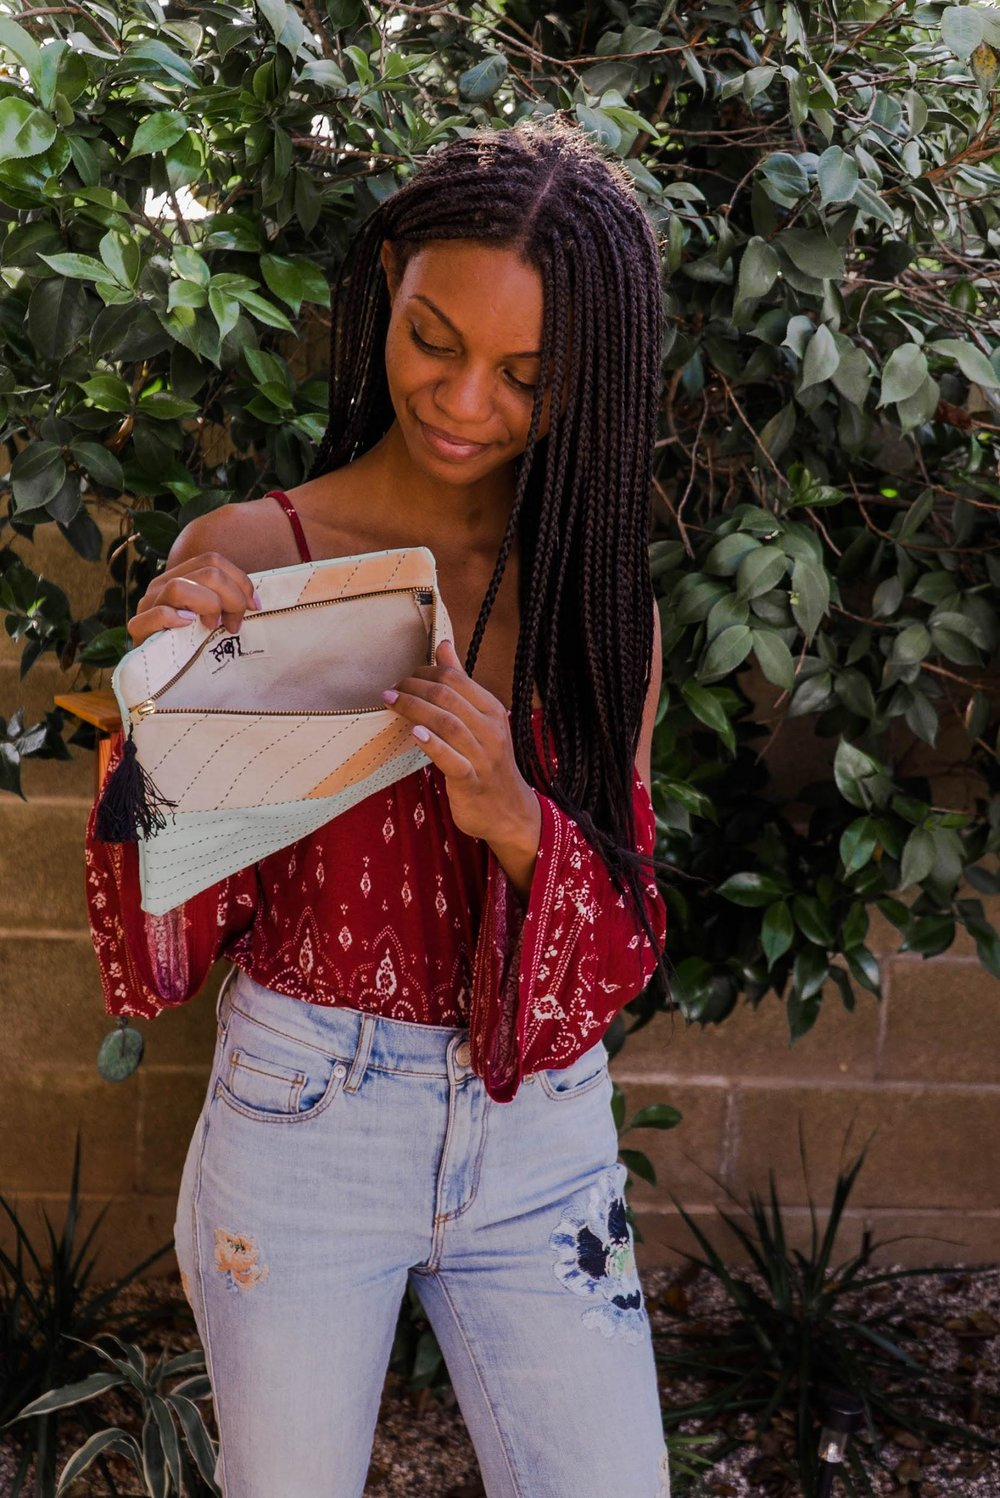 Thrifted outfit inspiration // A Week Of 1970s-Inspired Outfits With Leah Thomas, The Sustainable Lifestyle Blogger Behind Green Girl Leah on The Good Trade